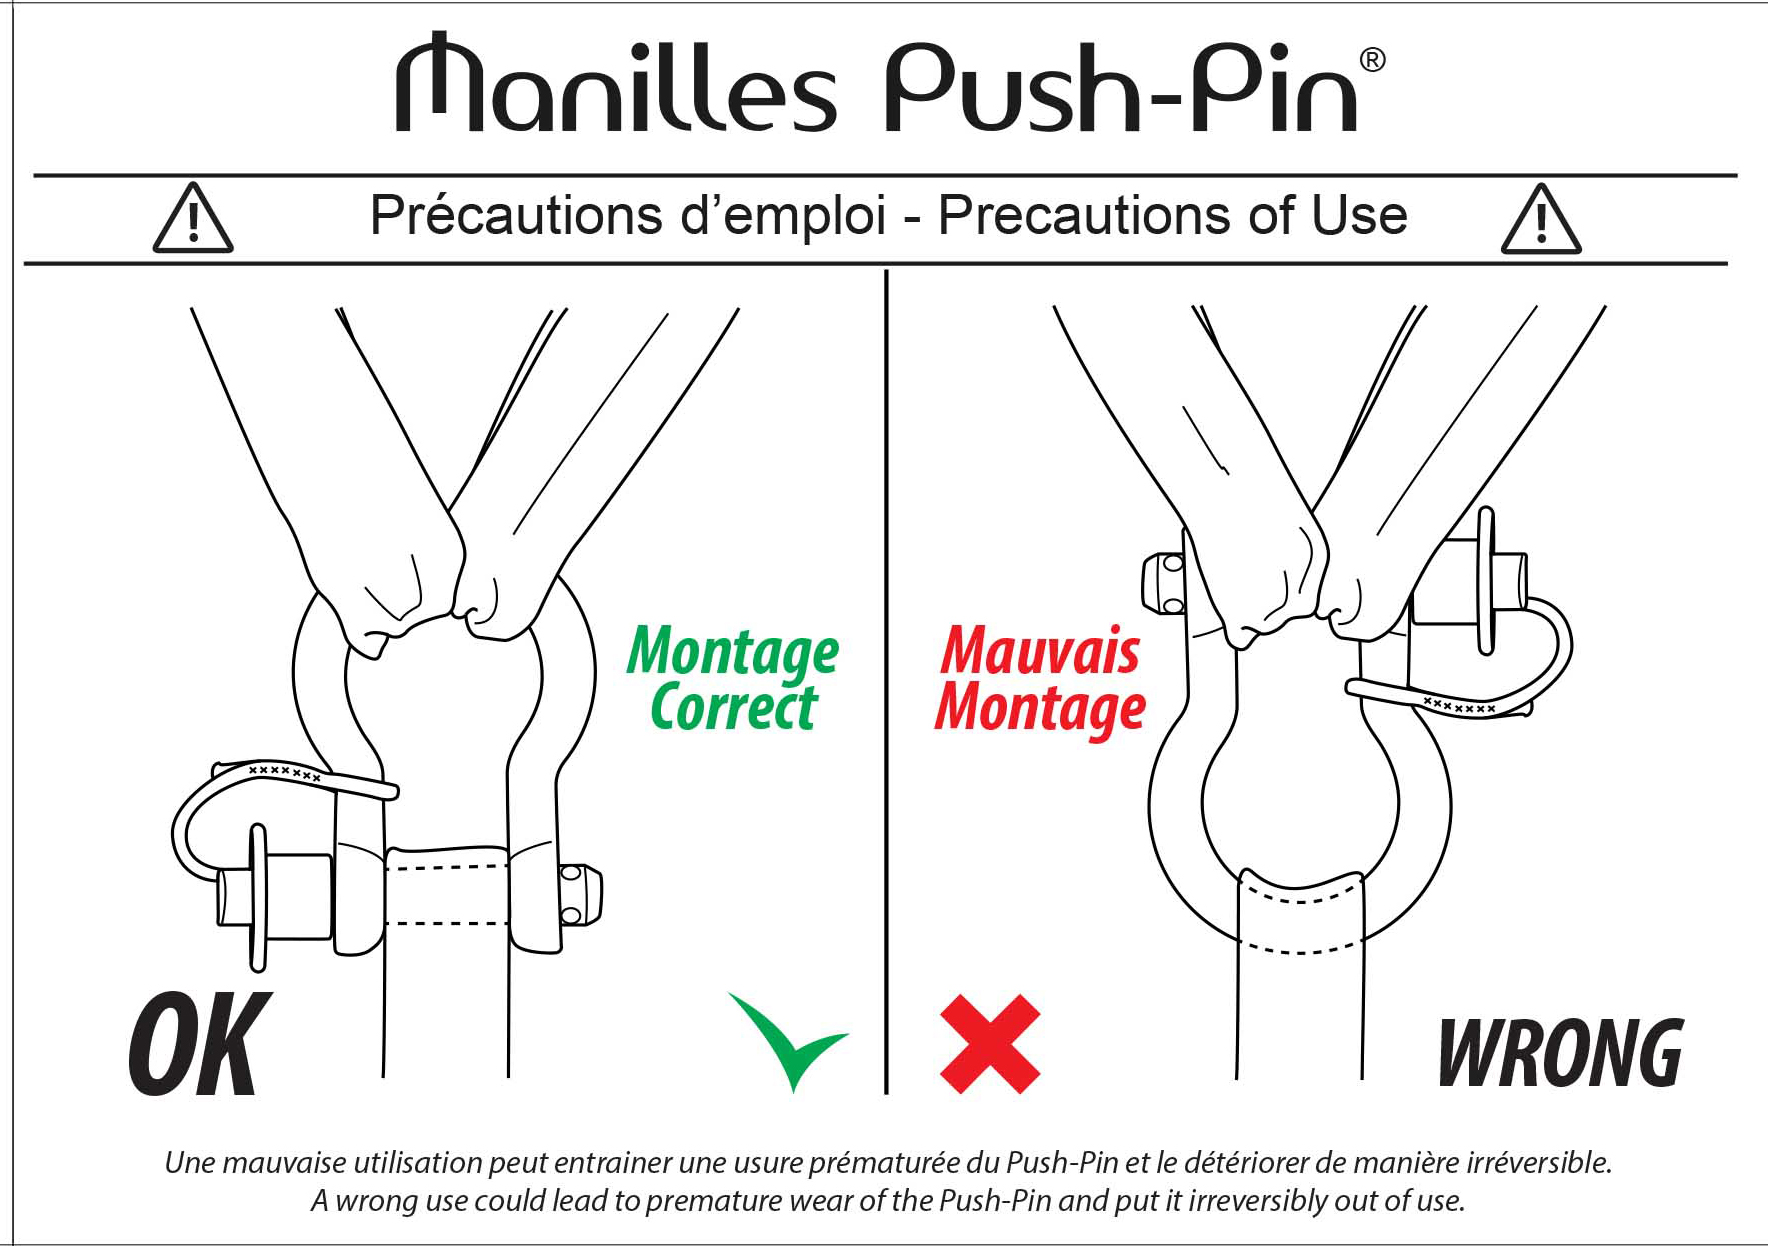 Notice manille pushpin